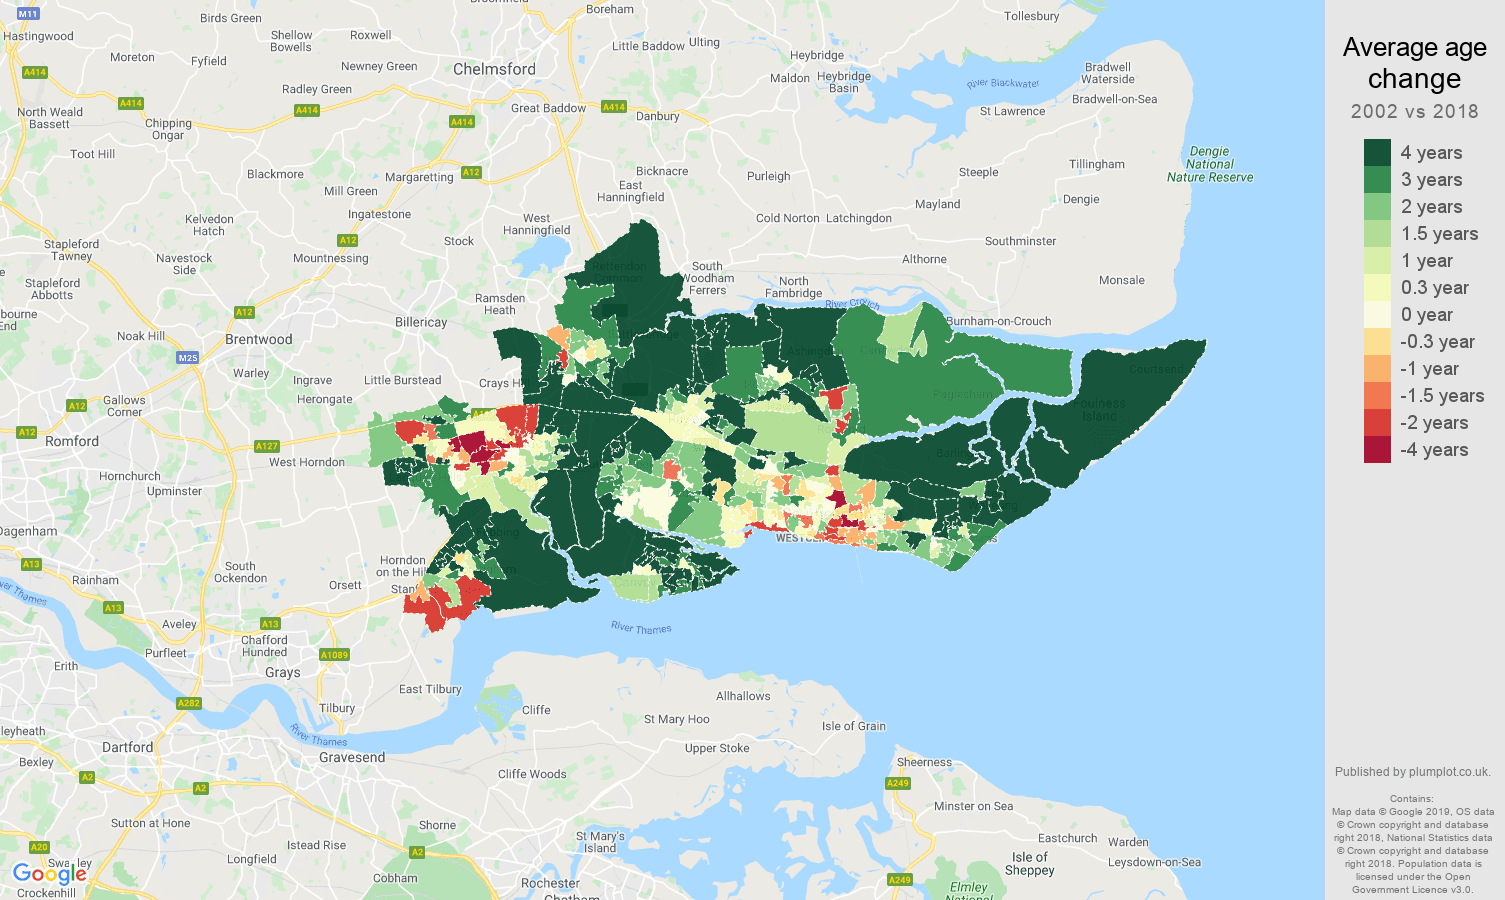 Southend on Sea average age change map